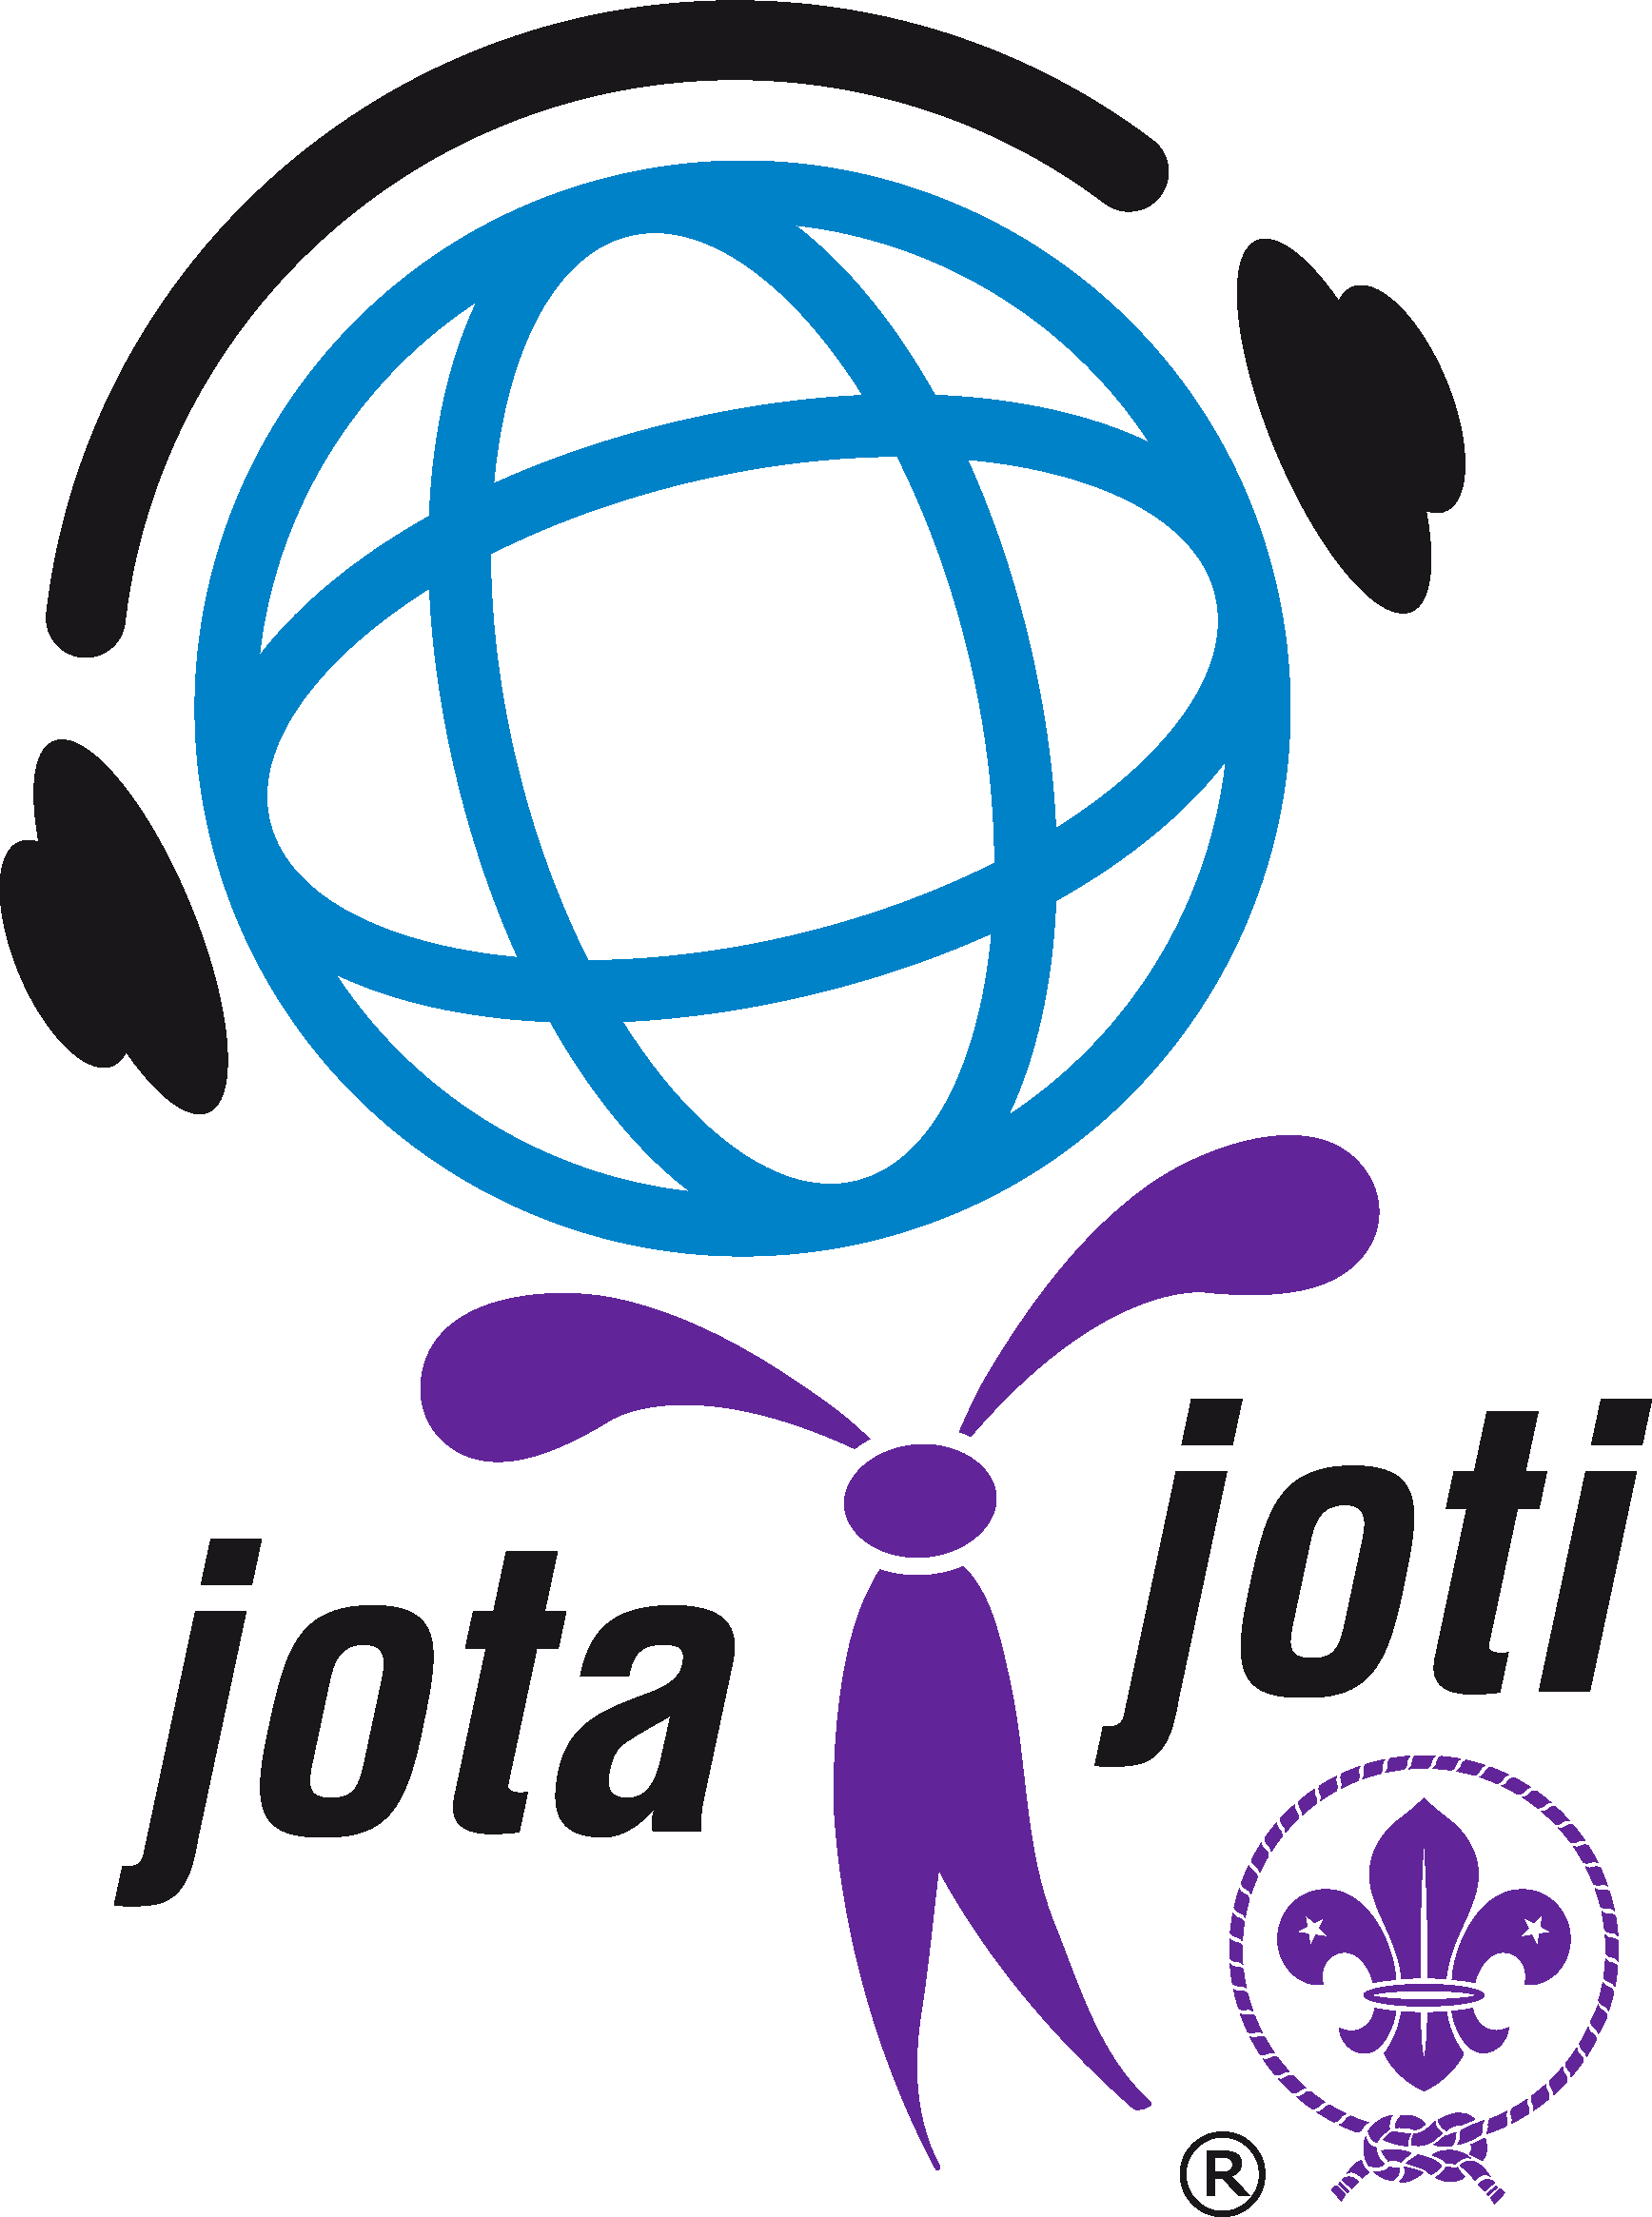 JOTA-JOTI Support Help Centre home page